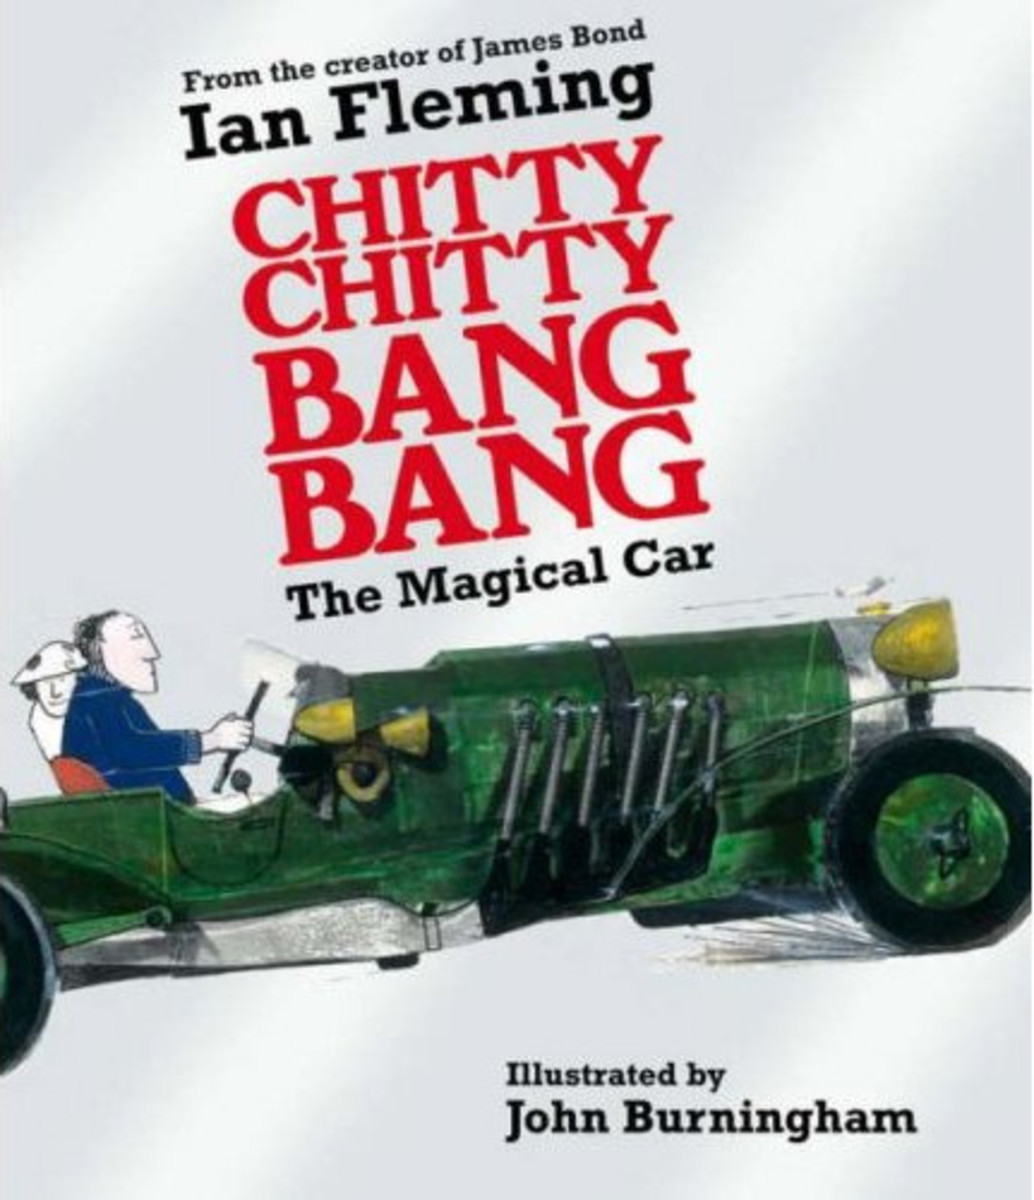 chitty-chitty-bang-bang-where-is-she-now